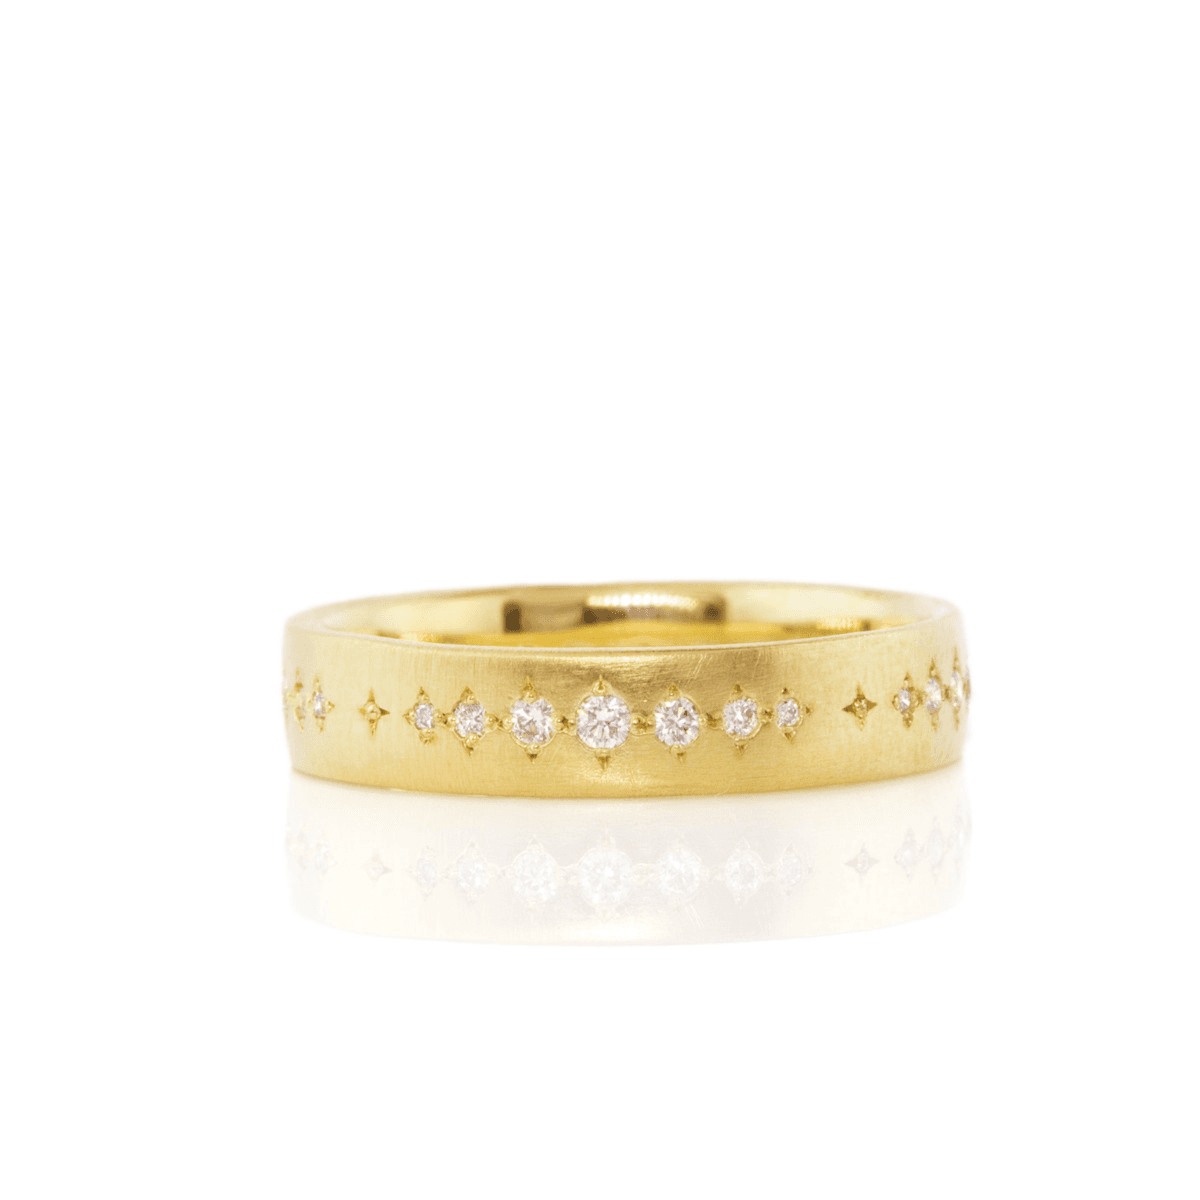 Daimonds in Gold Band - Adel Chefridi - Mansoor Jewelers